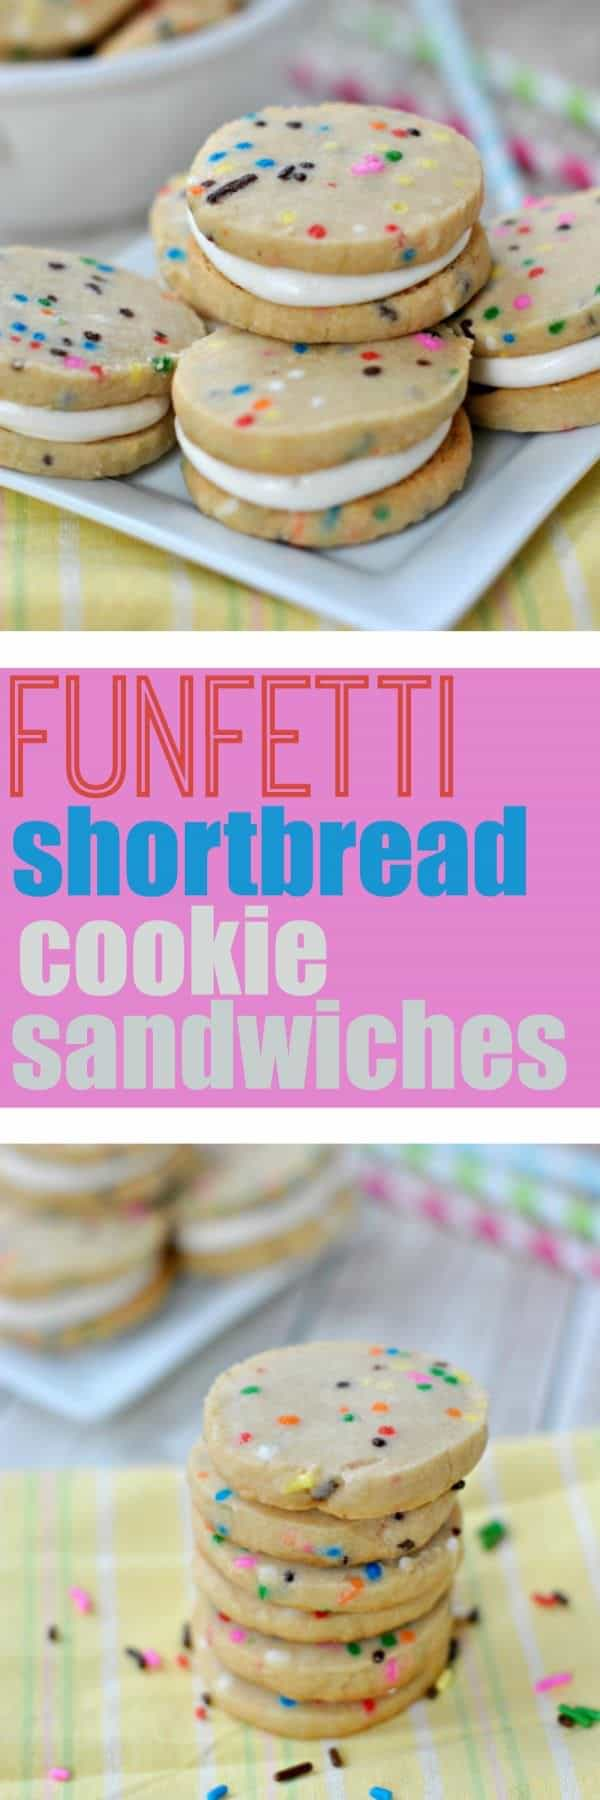 I'm pretty sure it's a well known fact that sprinkles make everything taste better. These Funfetti Shortbread Cookie Sandwiches are no exception to that rule! Filled with sprinkles, these are sure to go fast!